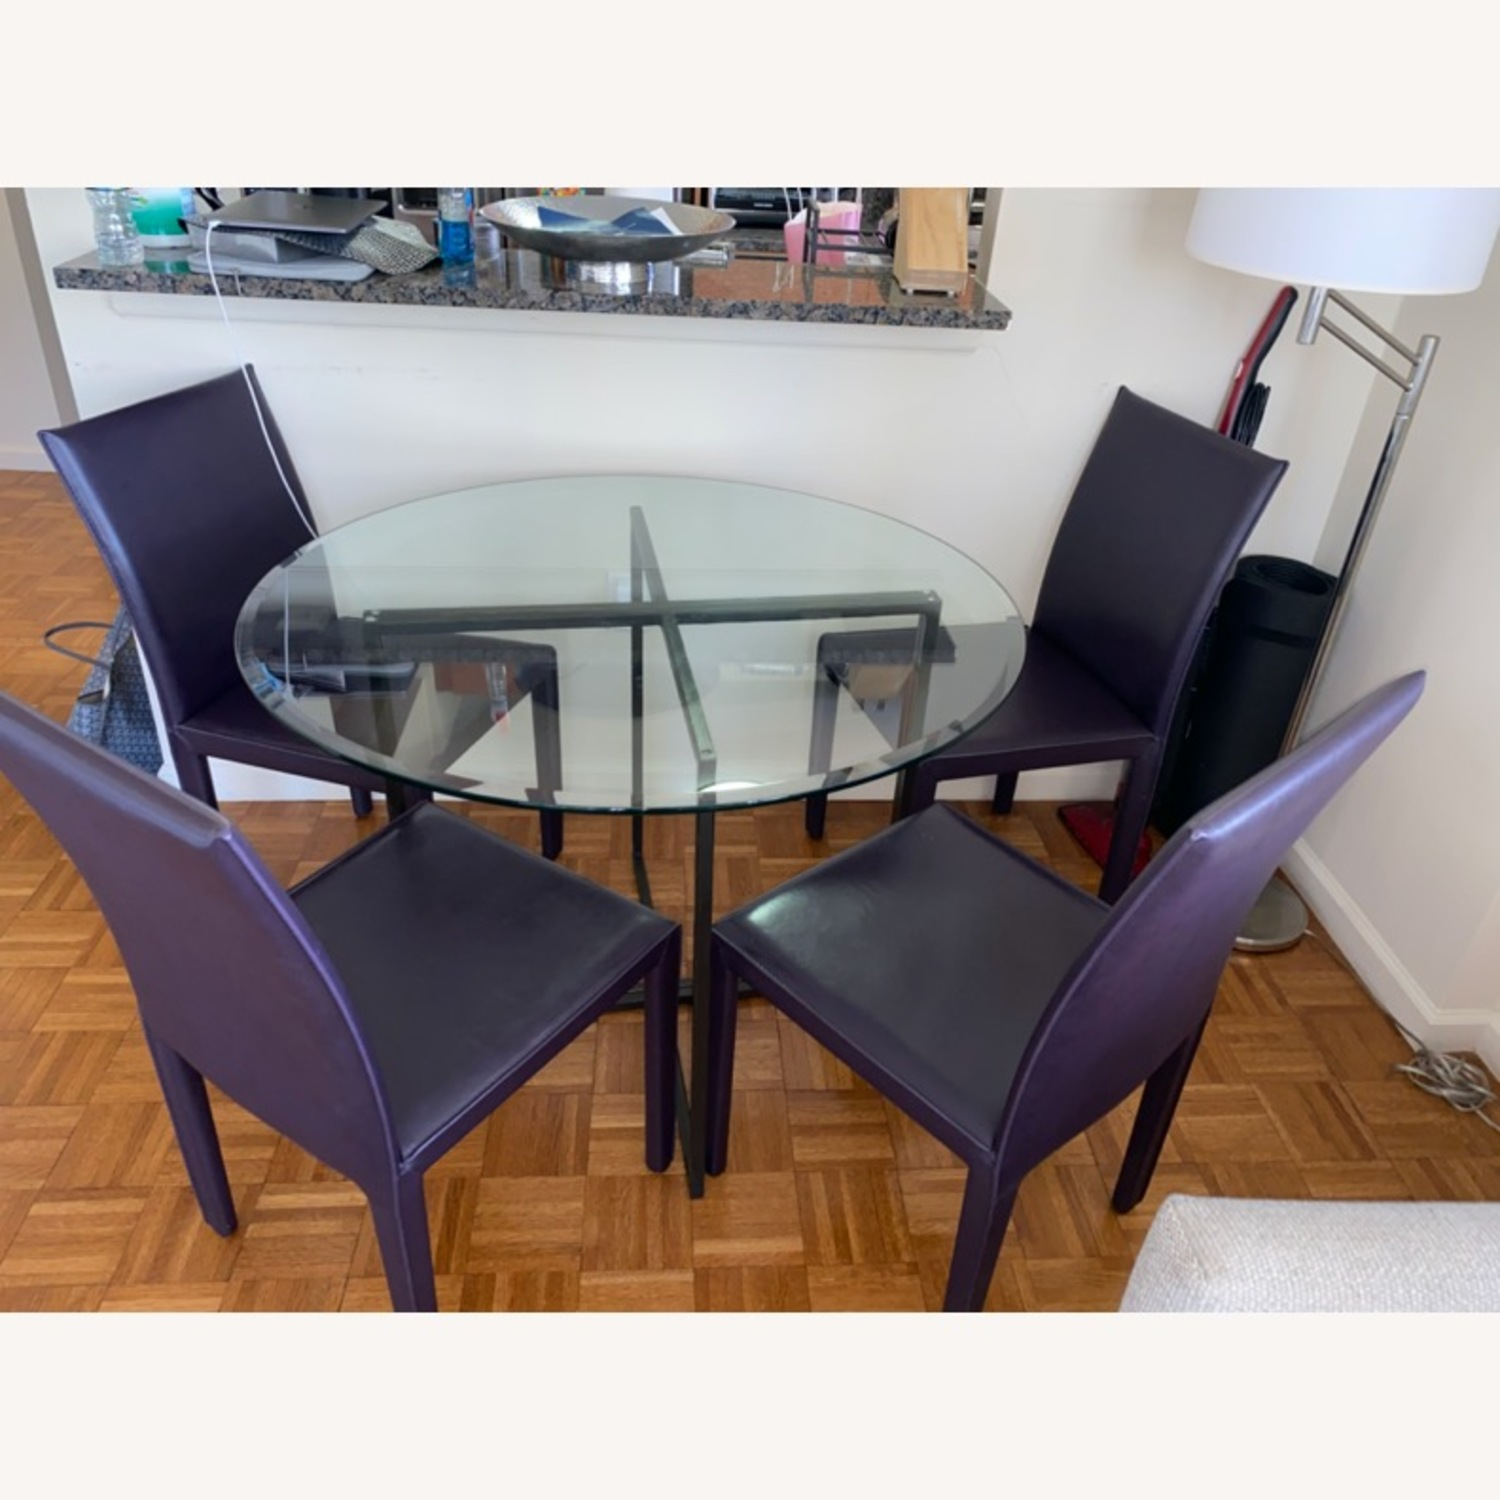 Crate & Barrel Purple Leather Dining Room Chairs - image-1